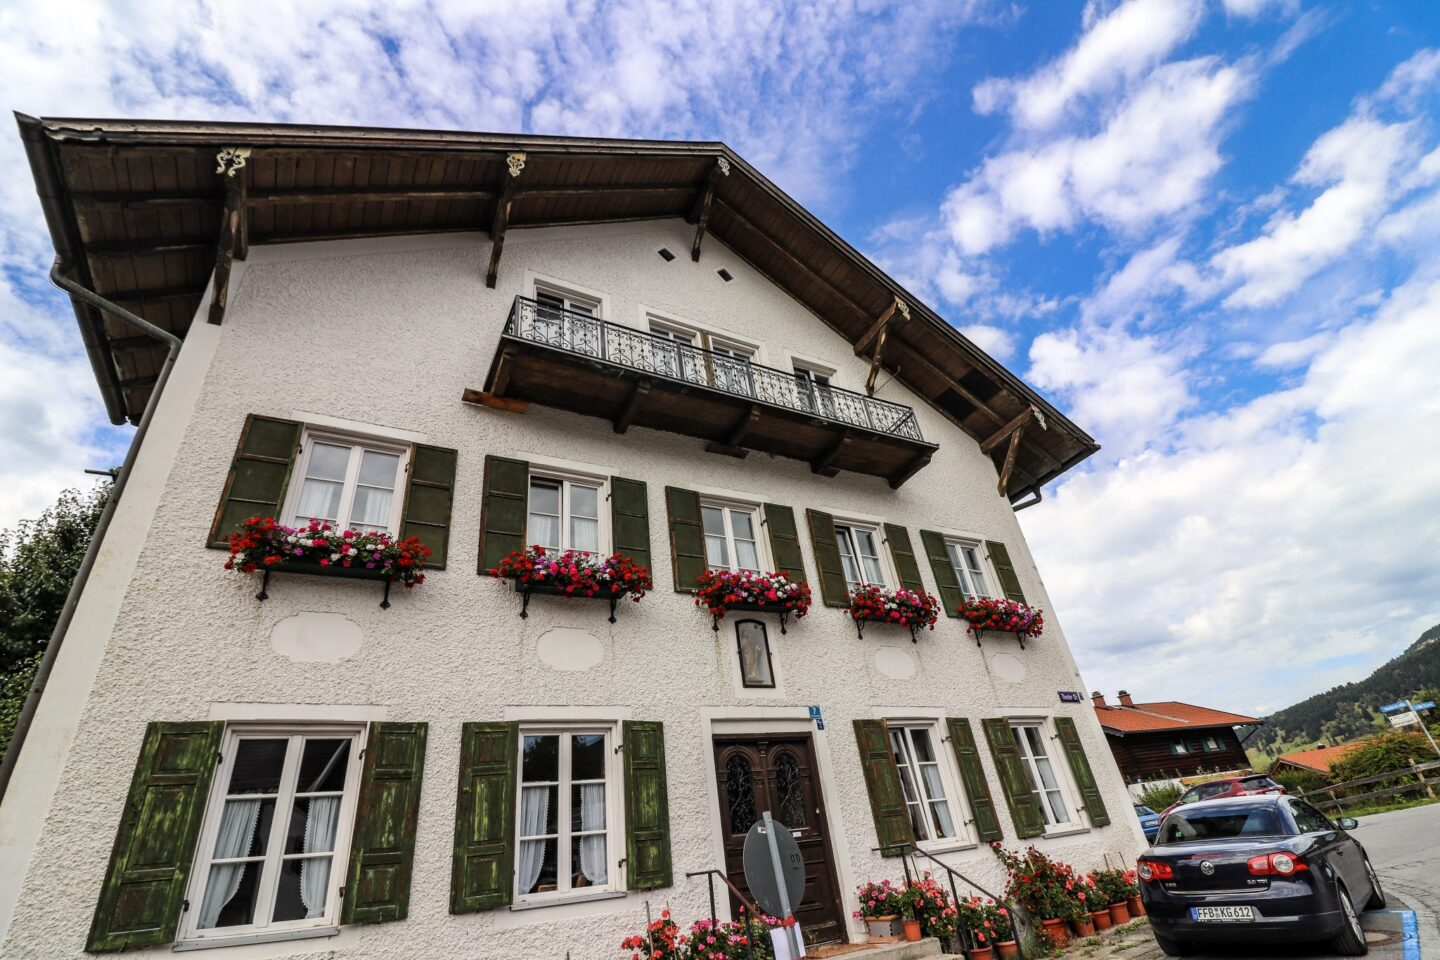 Germany: Road Trip through Bavaria & Beyond